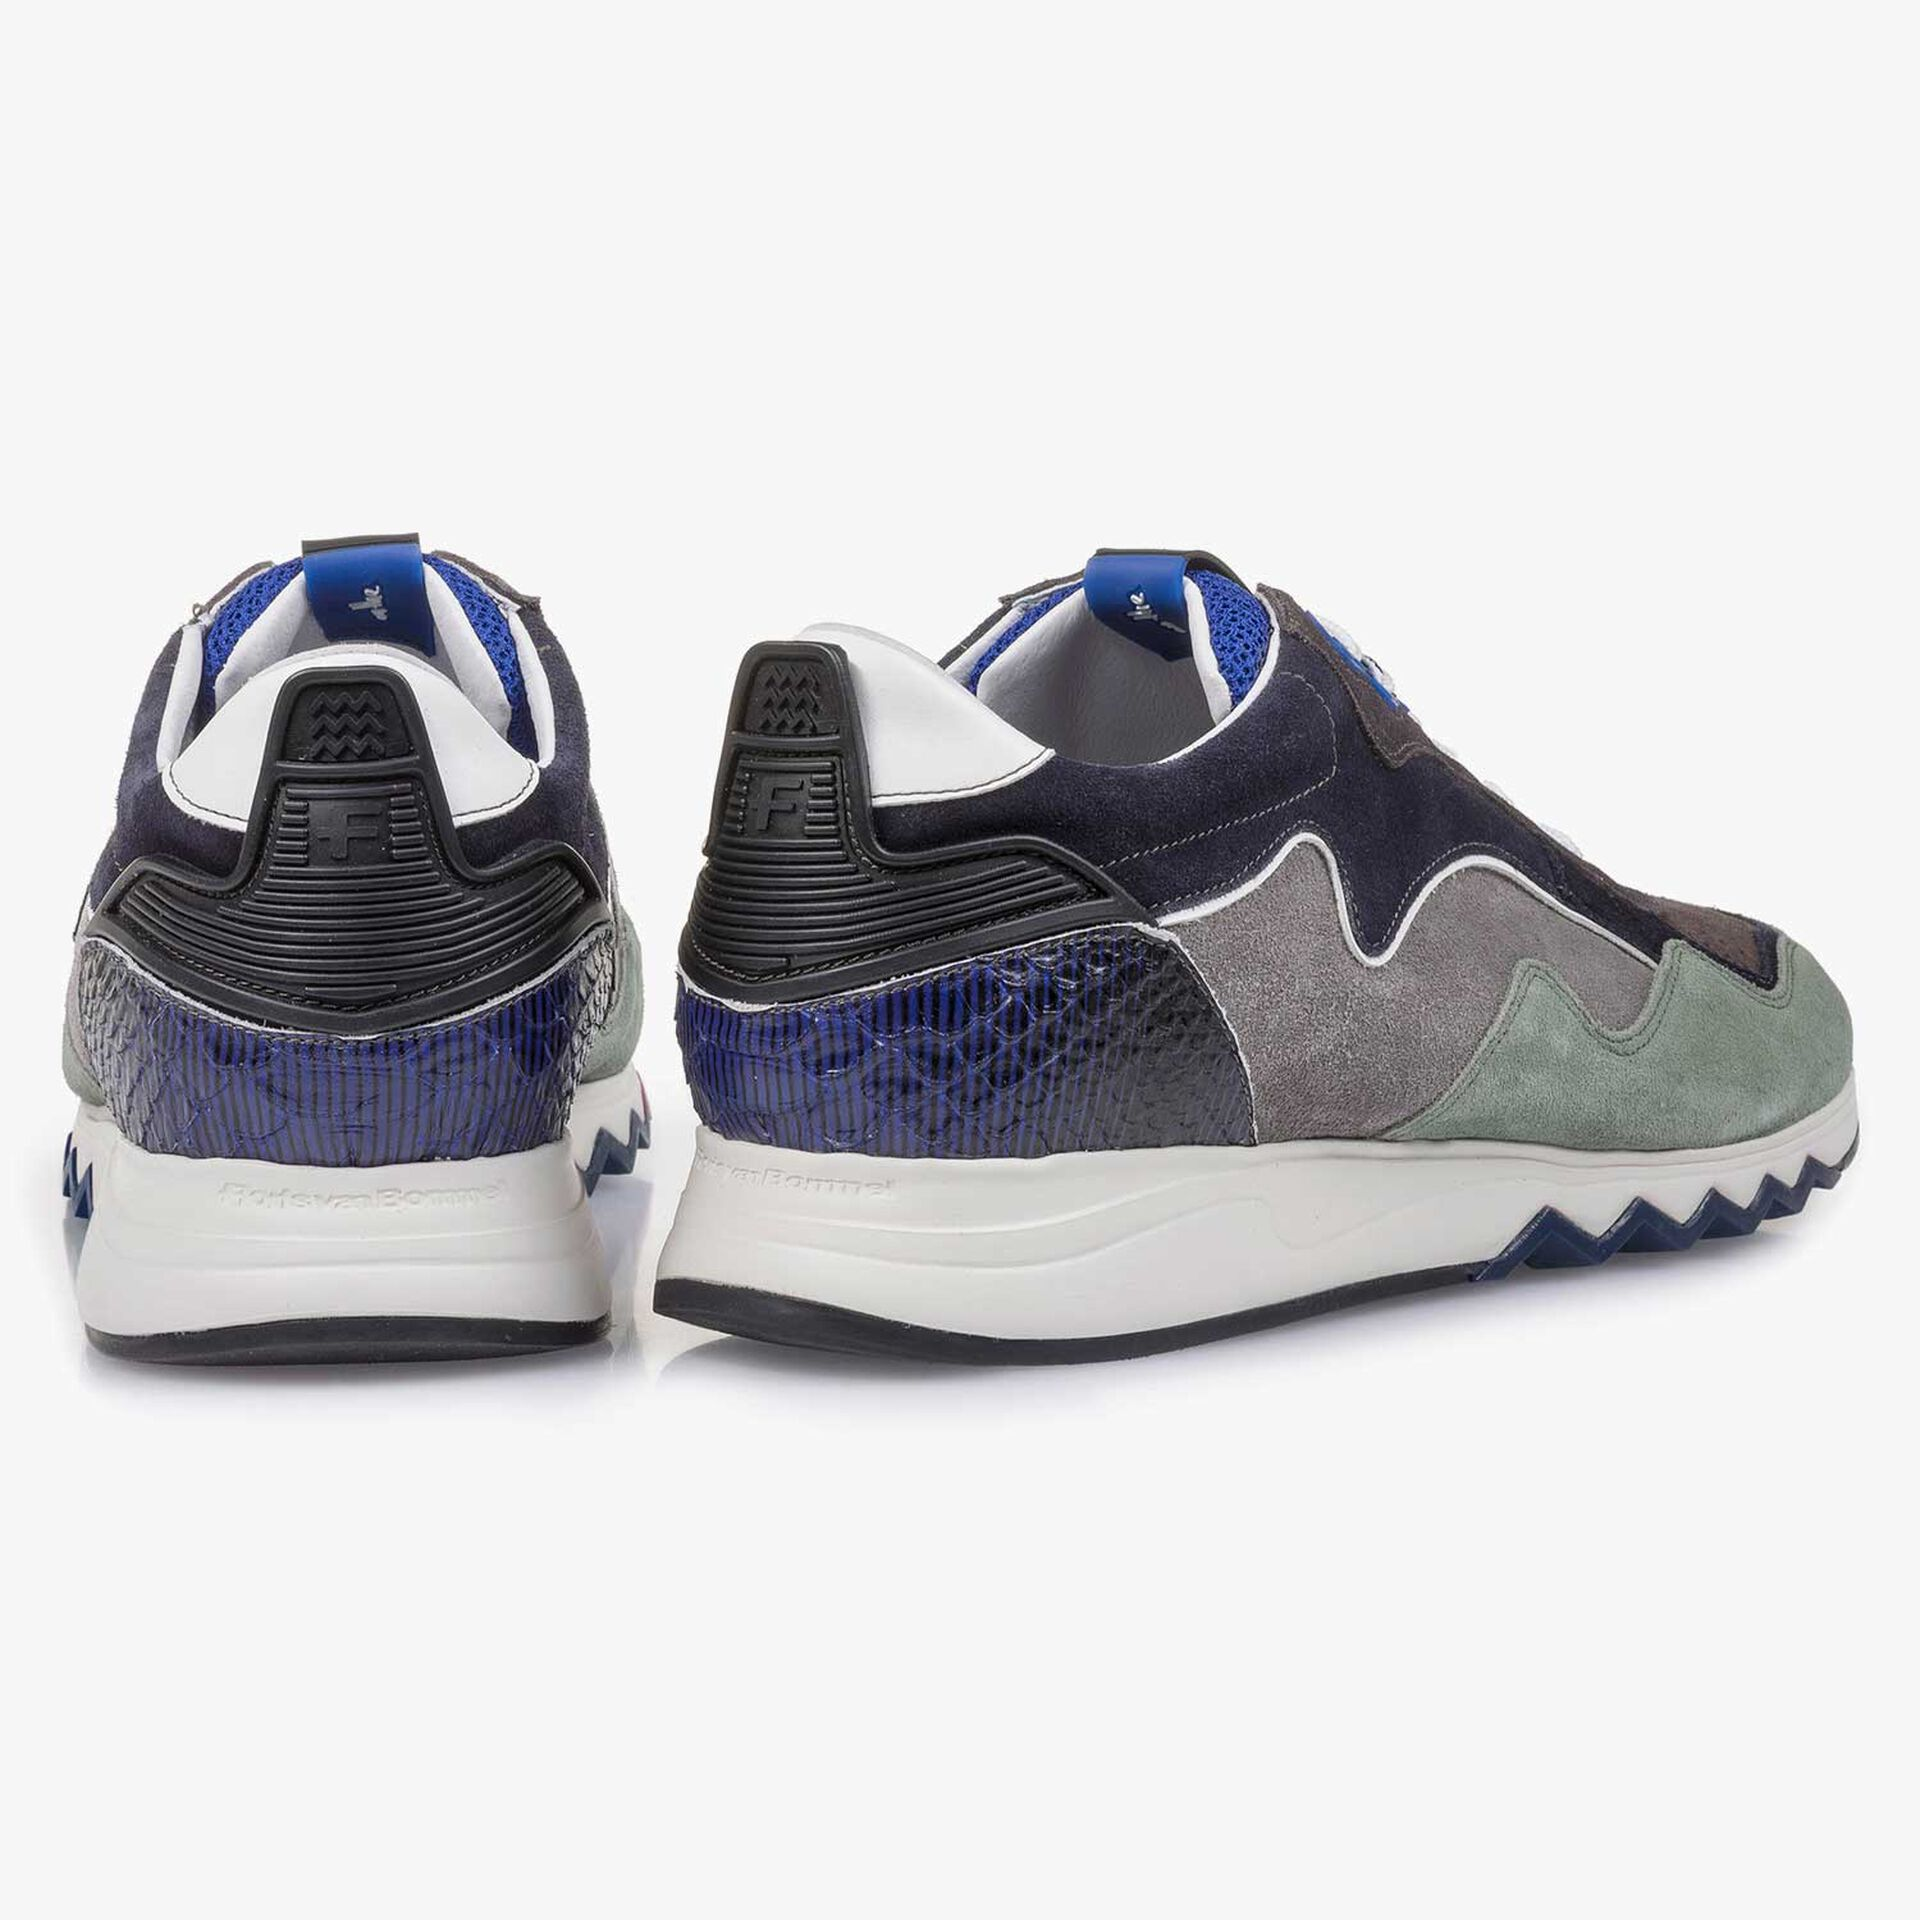 Green-blue suede leather sneaker